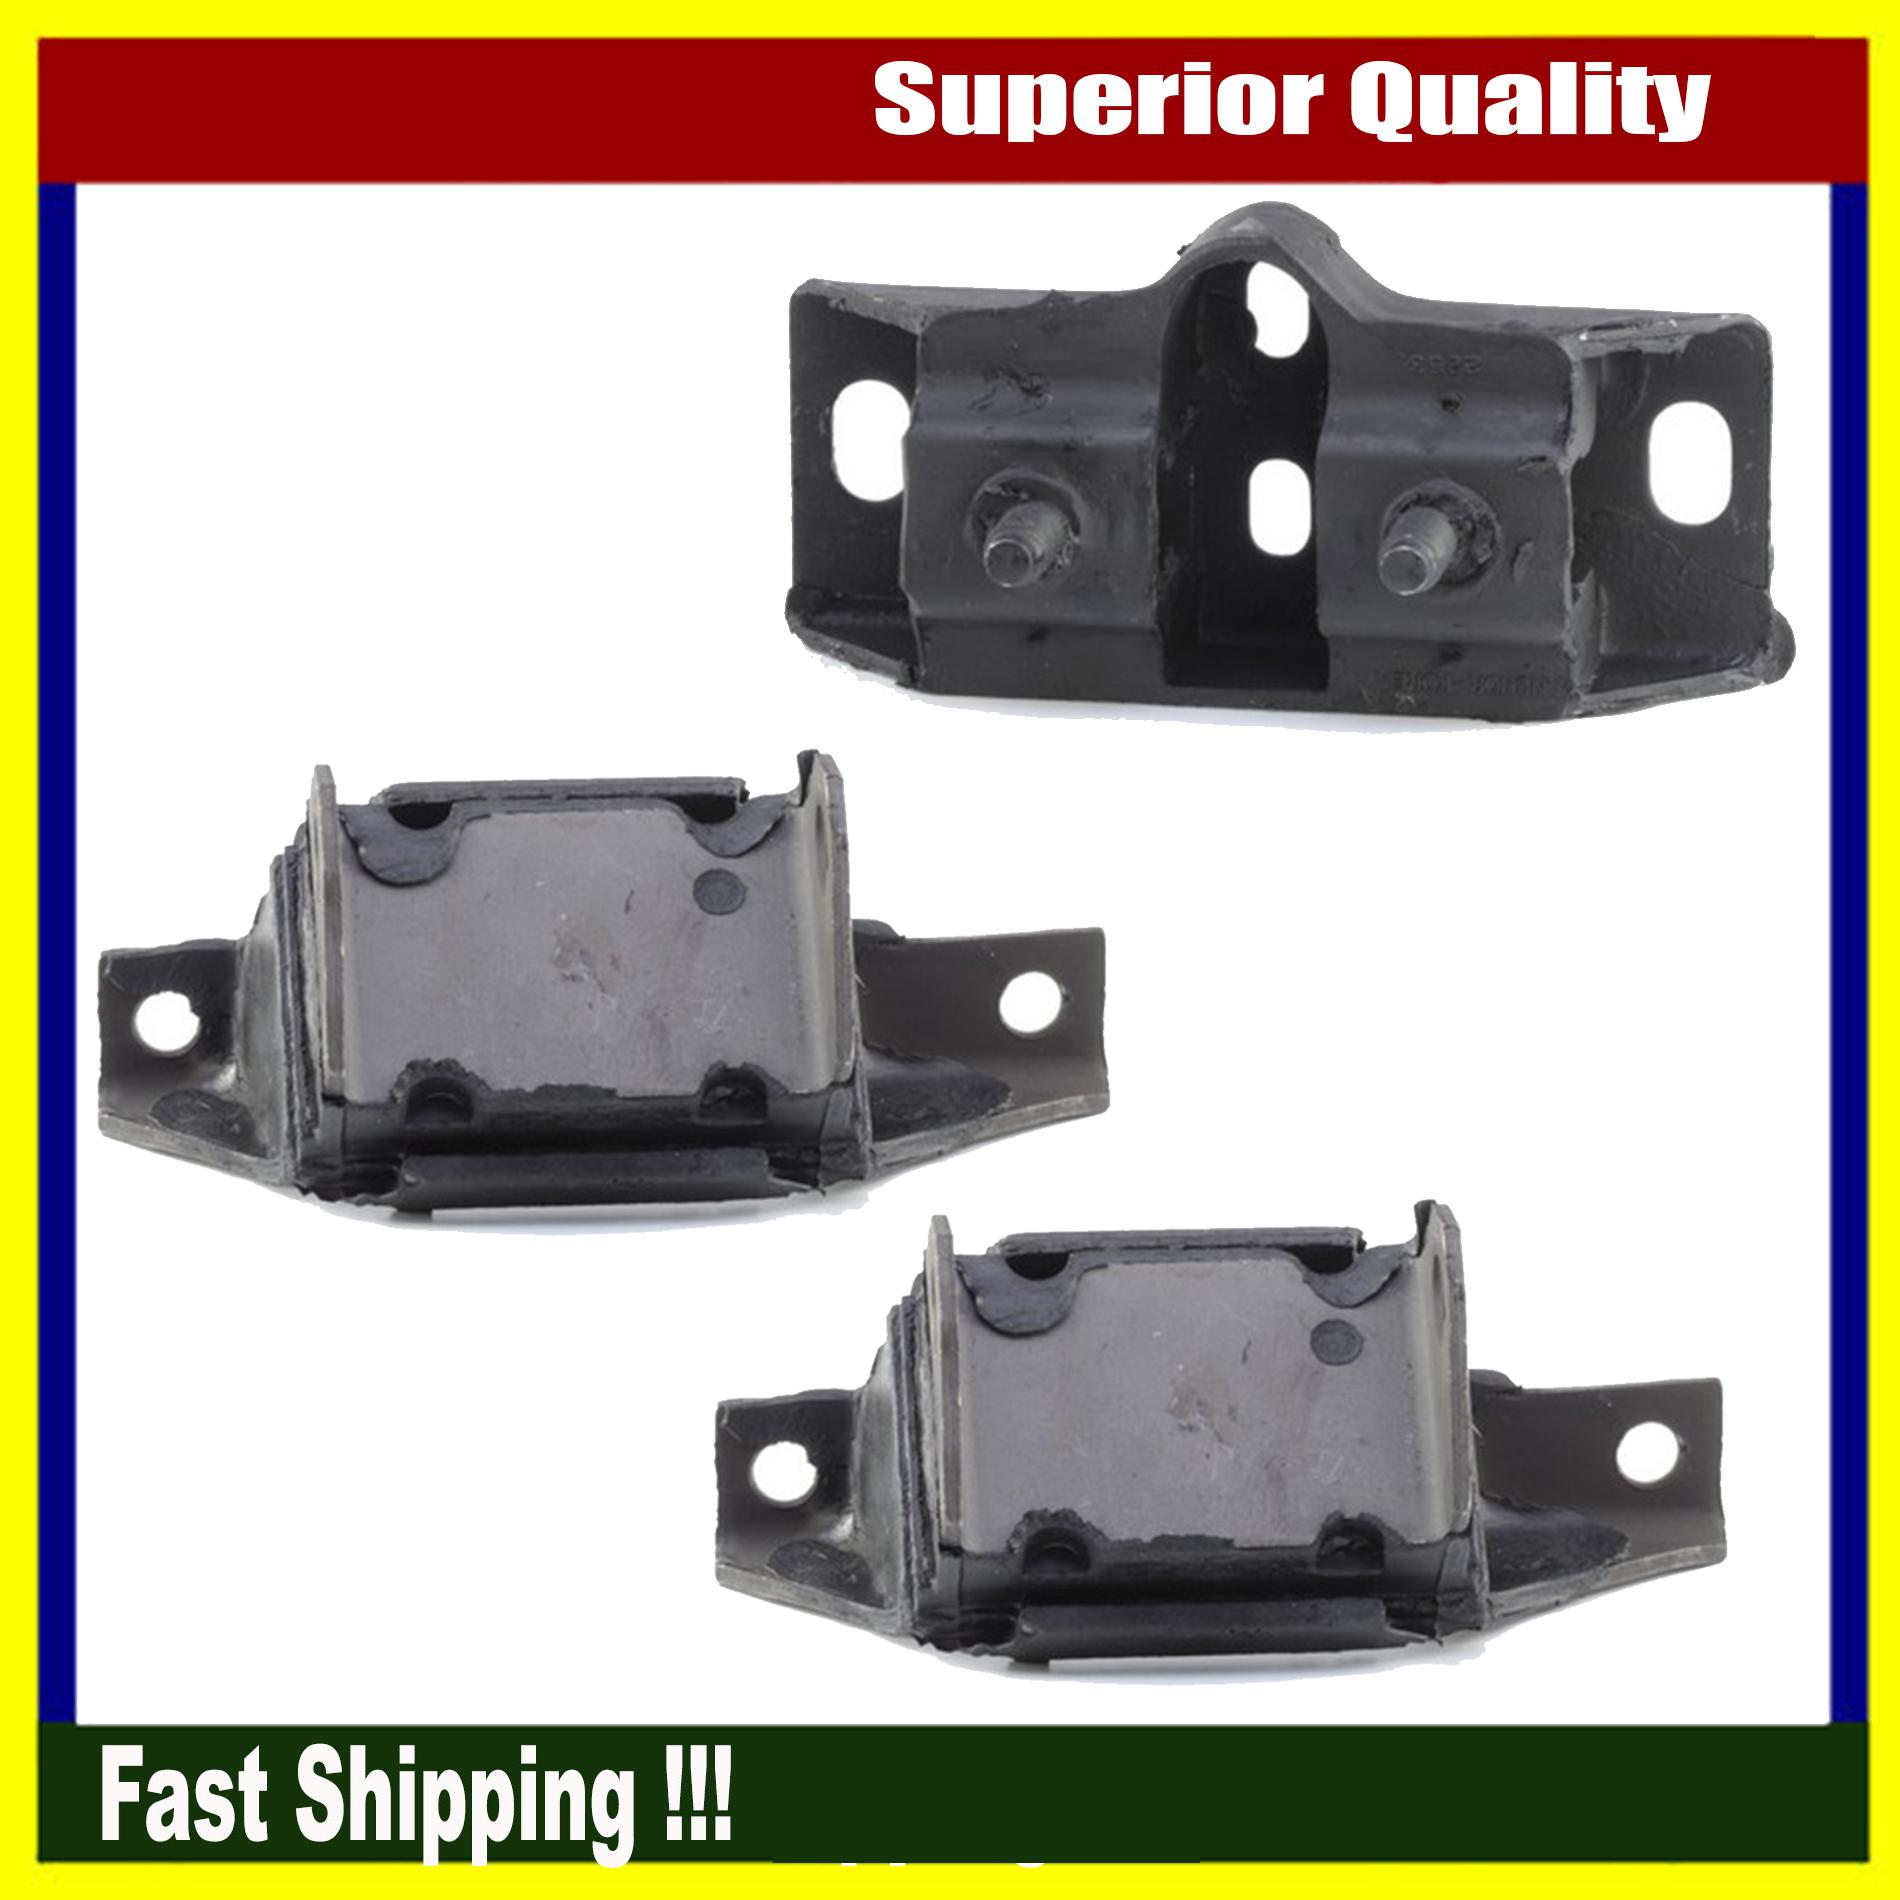 Anchor New Engine Motor Mount Set of 2PCs For Ford Mustang Ranchero